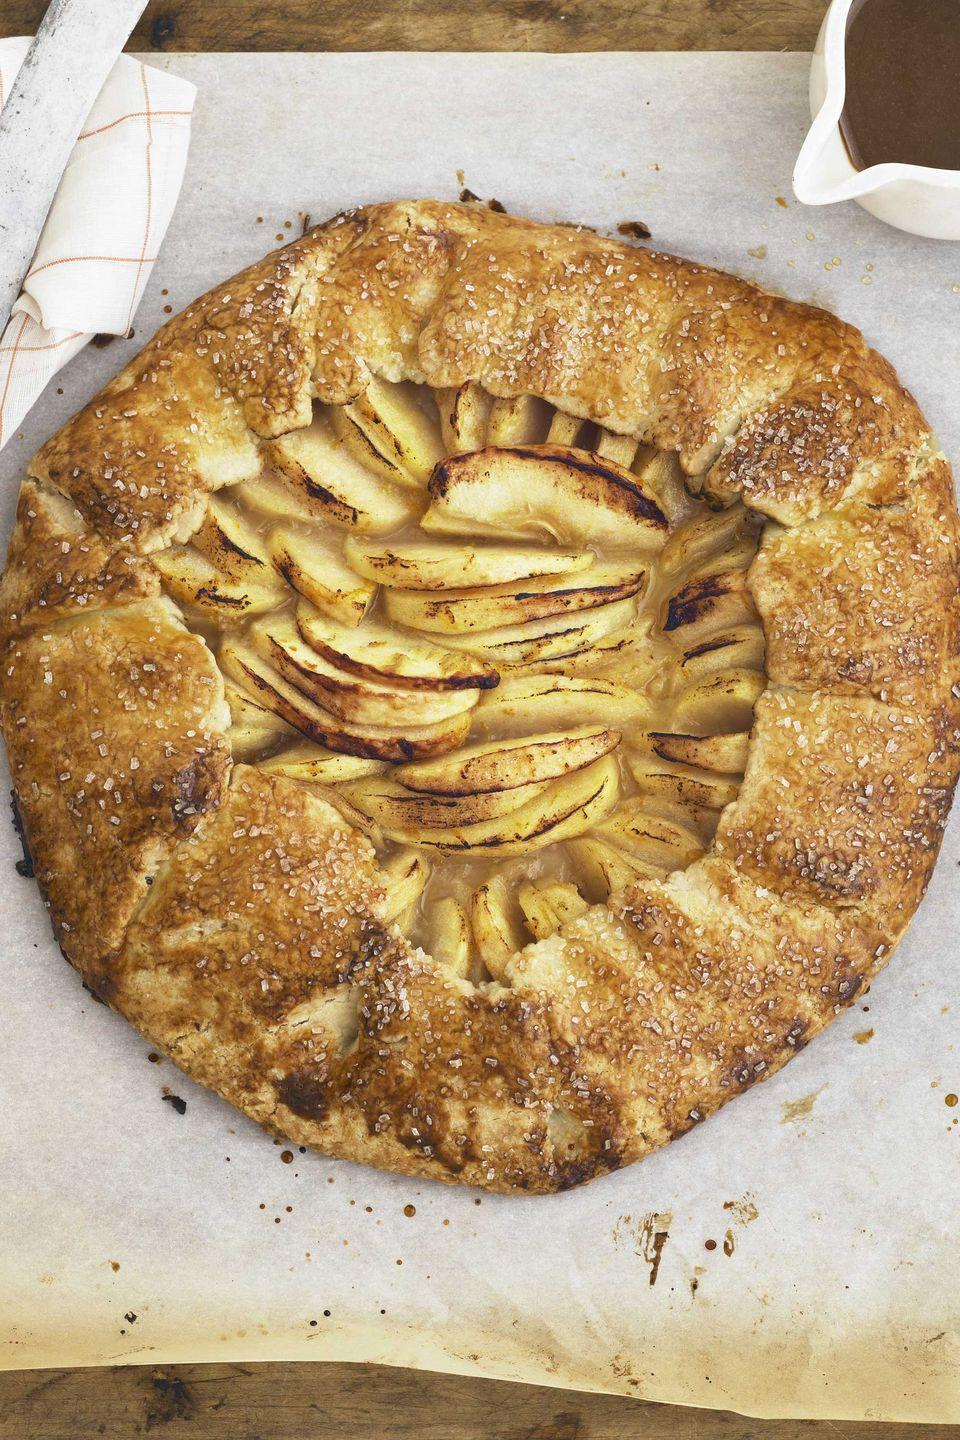 """<p>An apple galette is a classic fall dessert. This rustic version is paired with a butterscotch sauce spiked with Grand Marnier.</p><p><strong><a href=""""https://www.countryliving.com/food-drinks/recipes/a3454/rustic-apple-galette-recipe-clv0910/"""" rel=""""nofollow noopener"""" target=""""_blank"""" data-ylk=""""slk:Get the recipe"""" class=""""link rapid-noclick-resp"""">Get the recipe</a>.</strong></p>"""